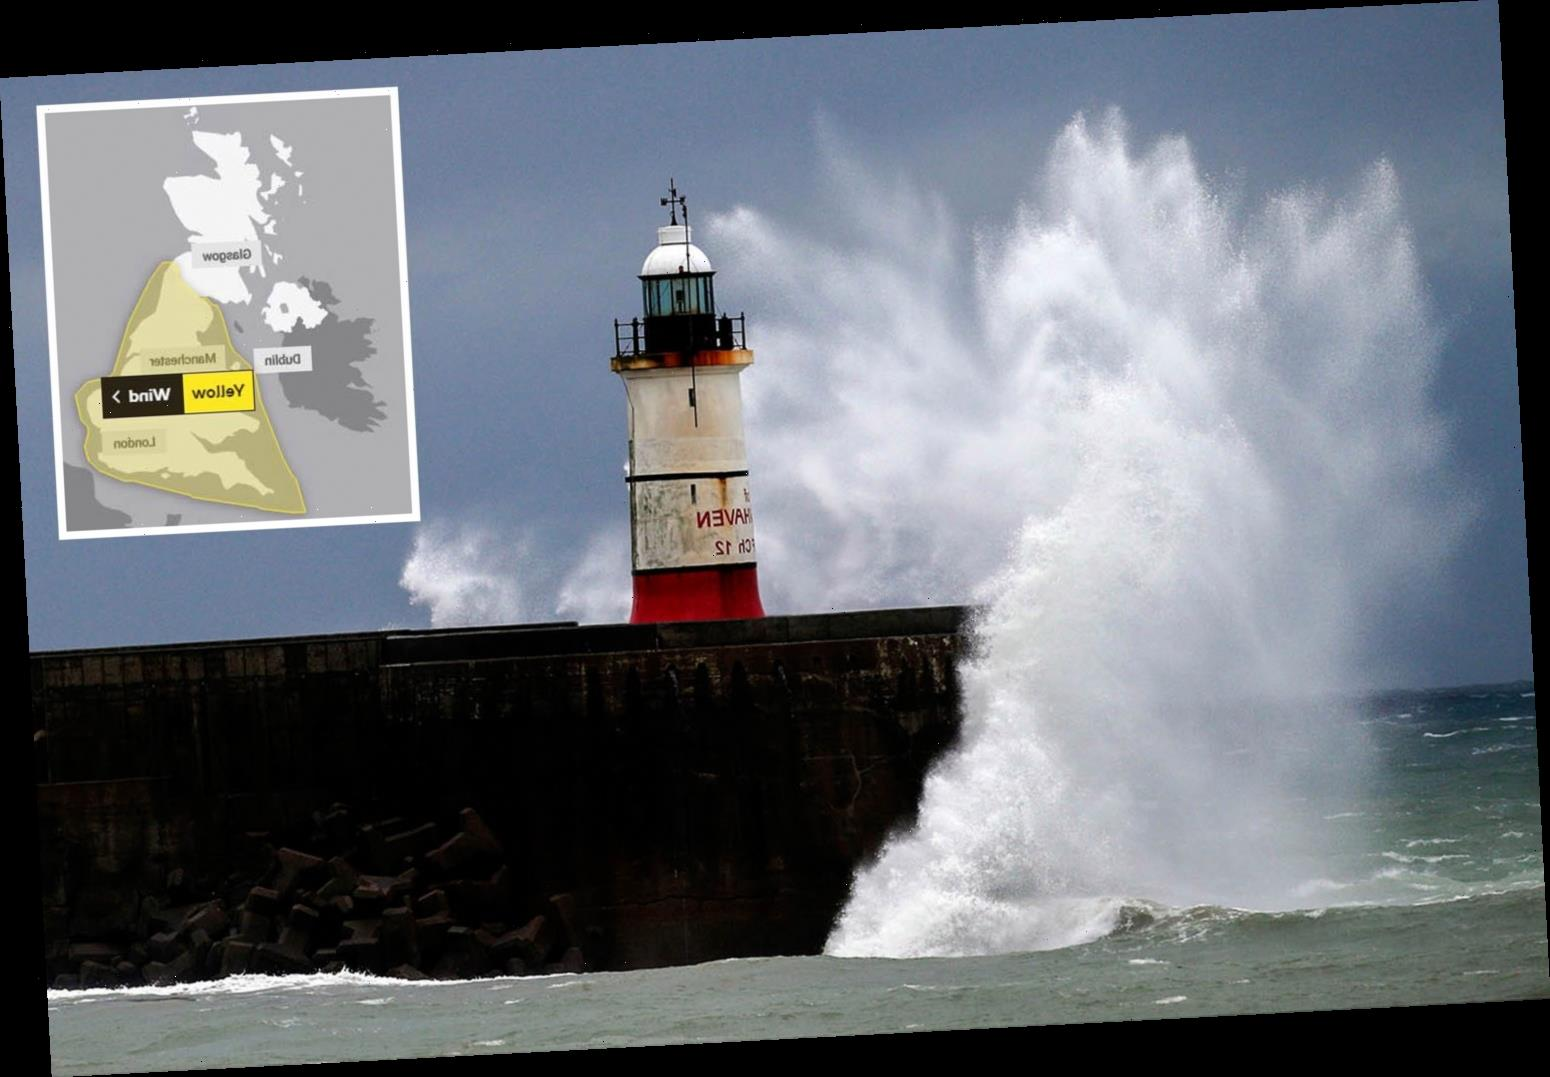 Wind weather warnings for the WHOLE of England and Wales as 70mph gales to batter country